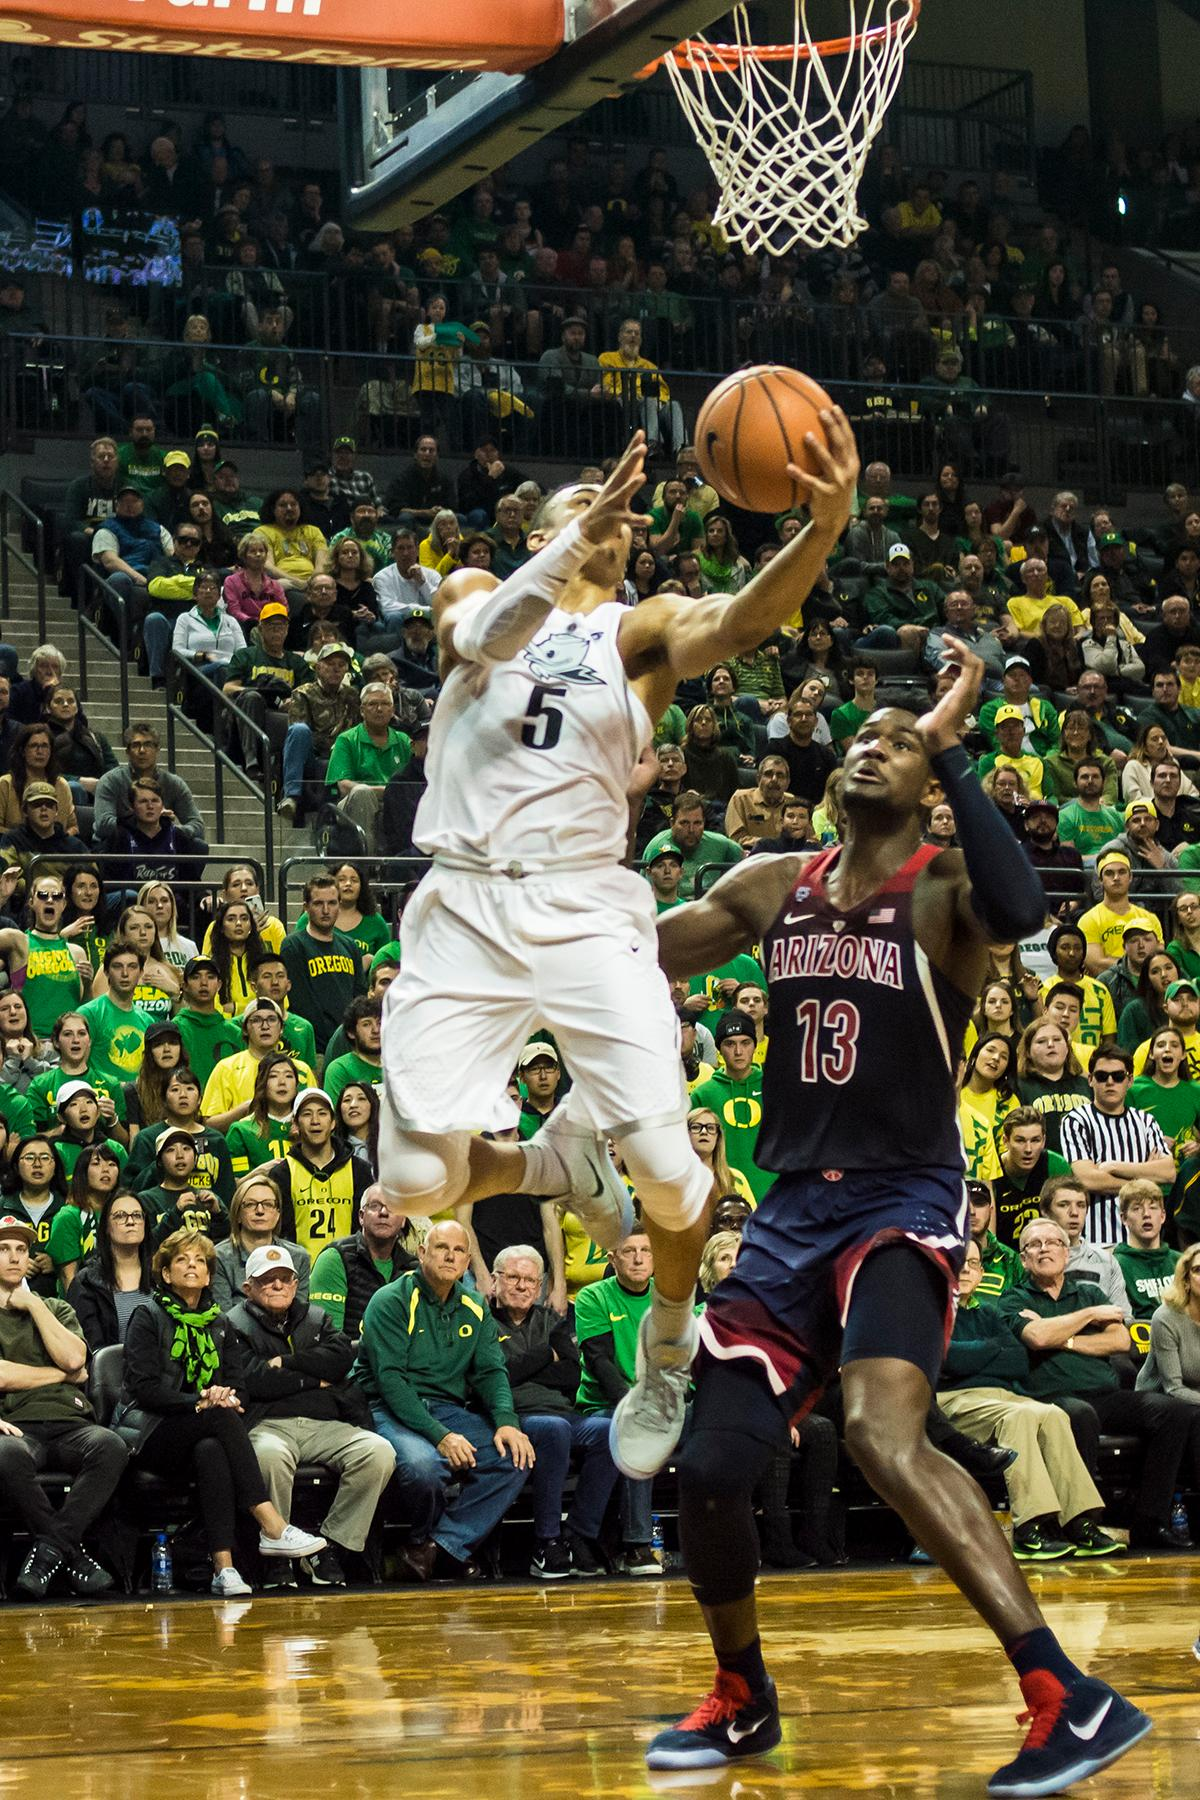 Oregon's Elijah Brown (5) goes for a layup against Arizona Wildcat's DeAndre Ayton (13) in their matchup at Matthew Knight Arena Saturday. The Ducks upset the fourteenth ranked Wildcats 98-93 in a stunning overtime win in front of a packed house of over 12,000 fans for their final home game to improve to a 19-10 (9-7 PAC-12) record on the season. Oregon will finish out regular season play on the road in Washington next week against Washington State on Thursday, then Washington on the following Saturday. (Photo by Colin Houck)